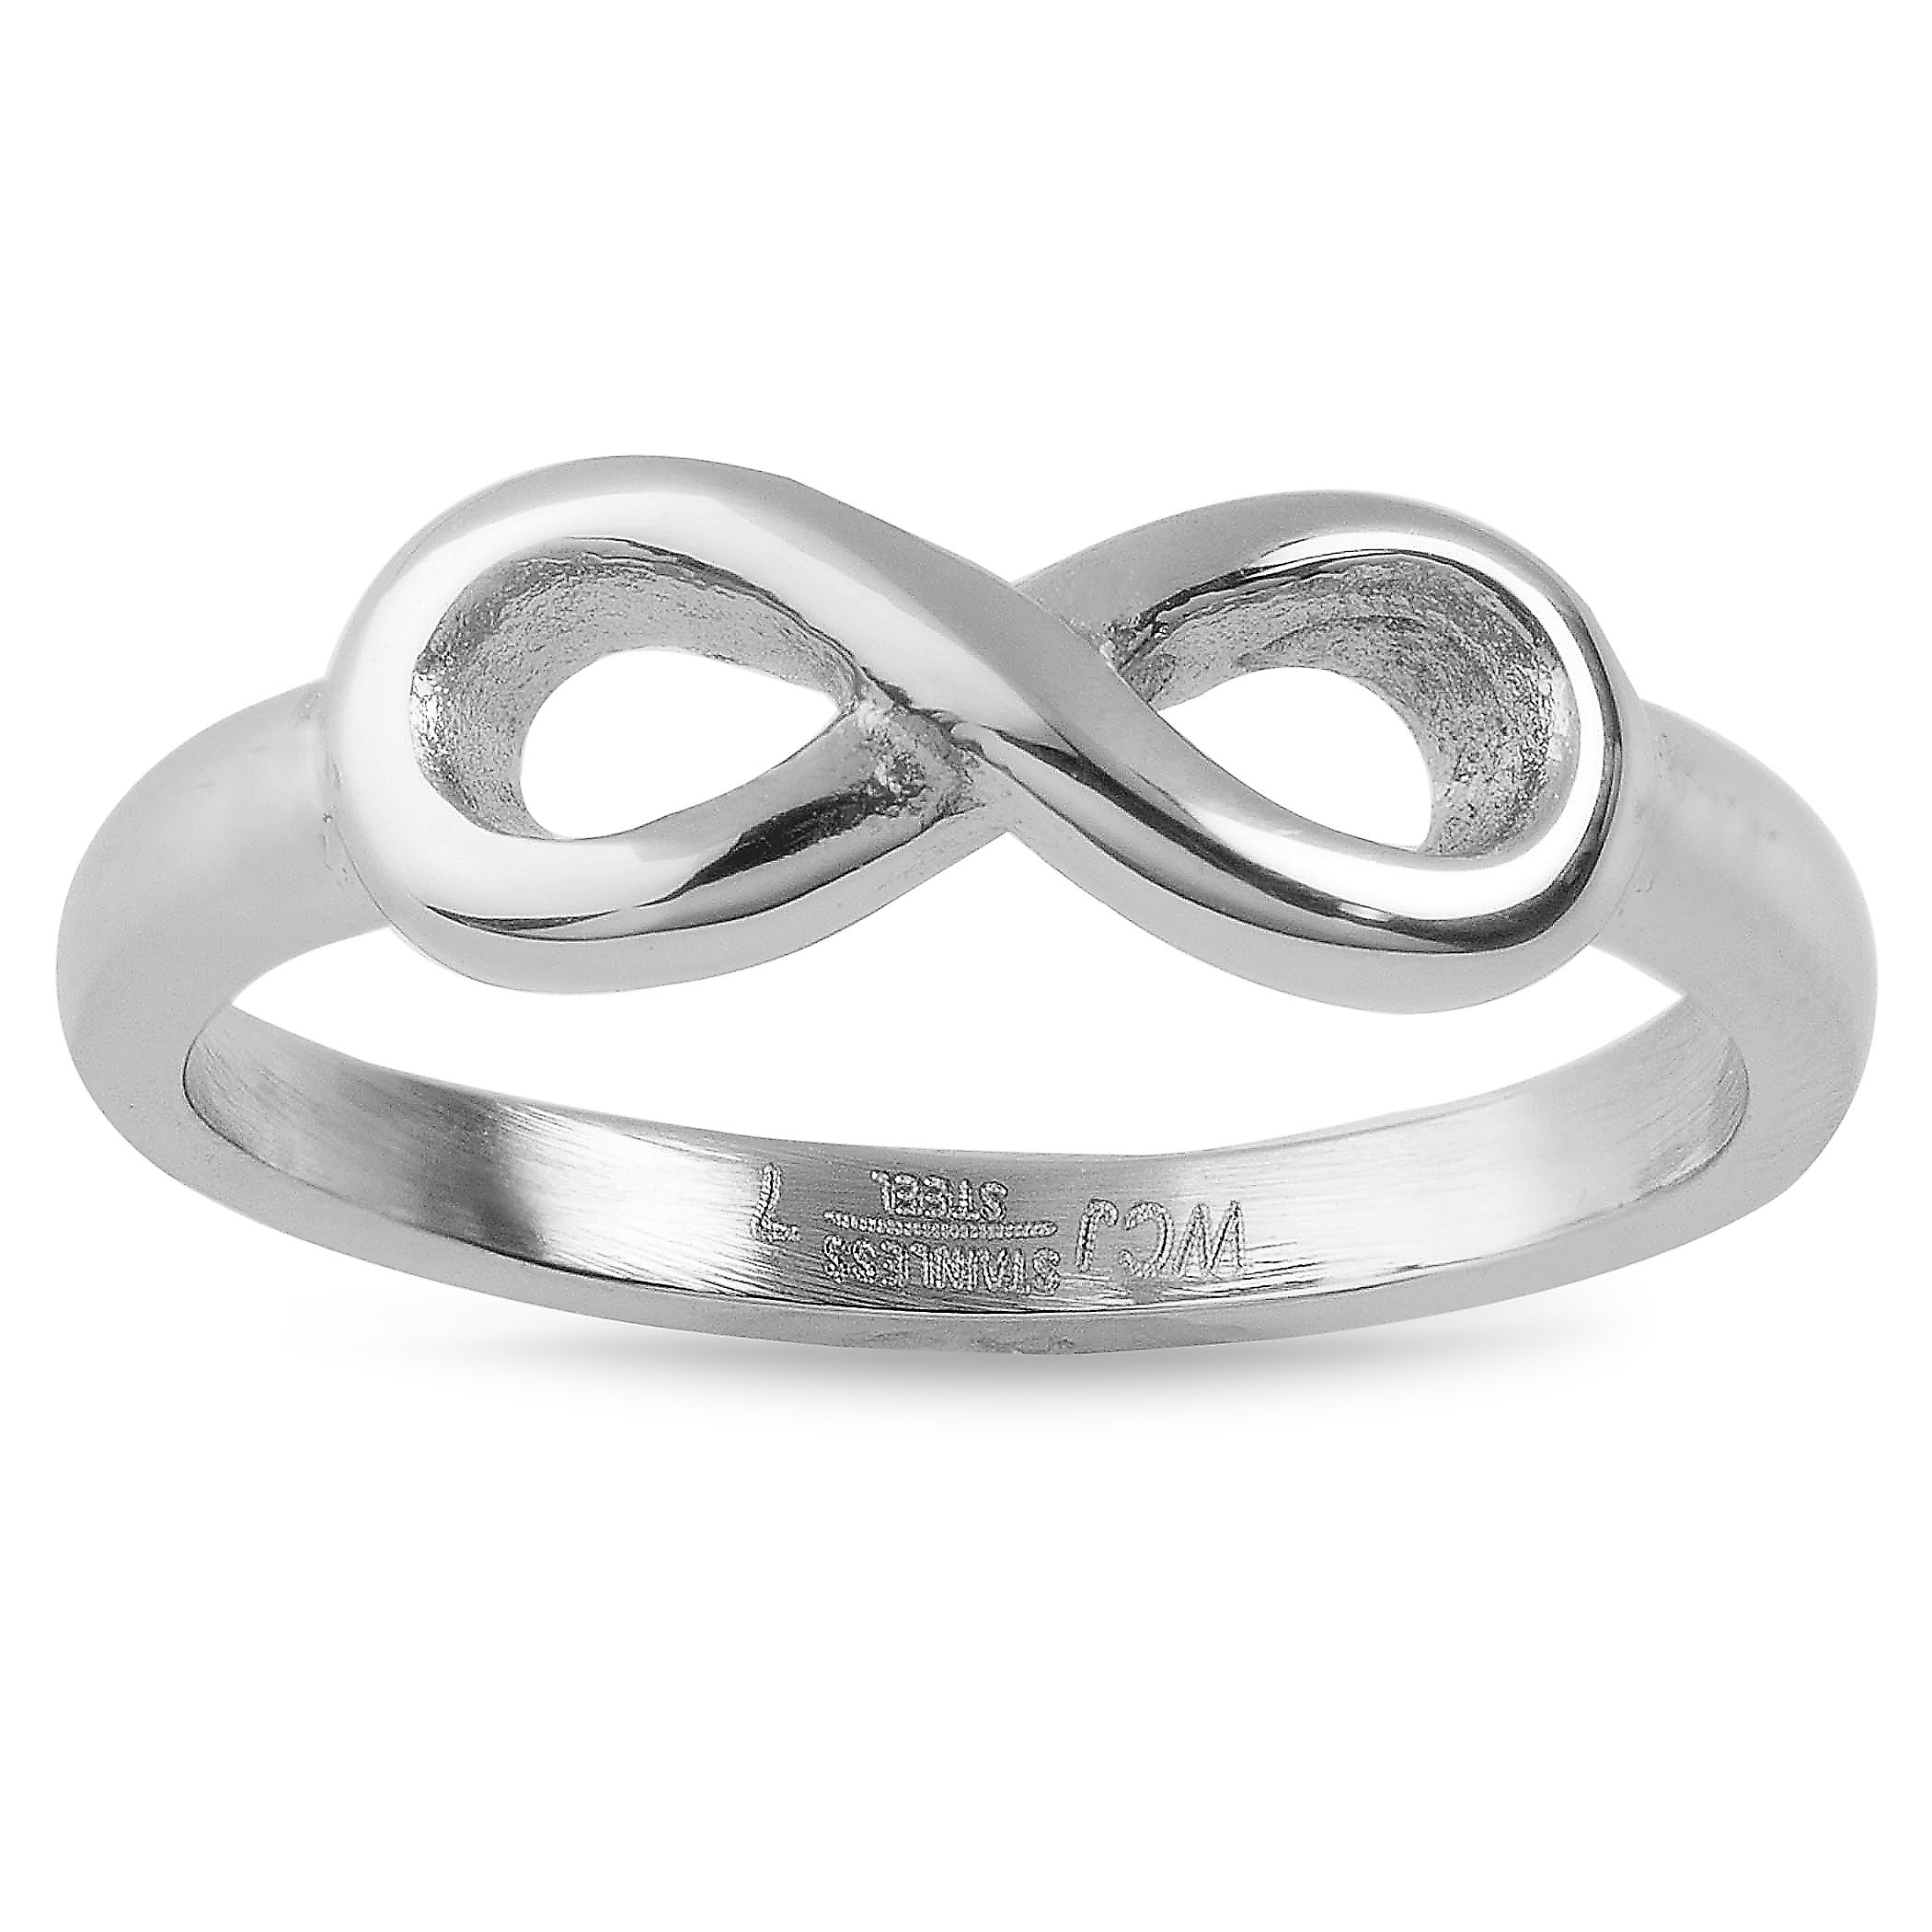 next infiniti in double size sterling ring silver and white enhanced nivellia infinity online blue product niche diamond previous